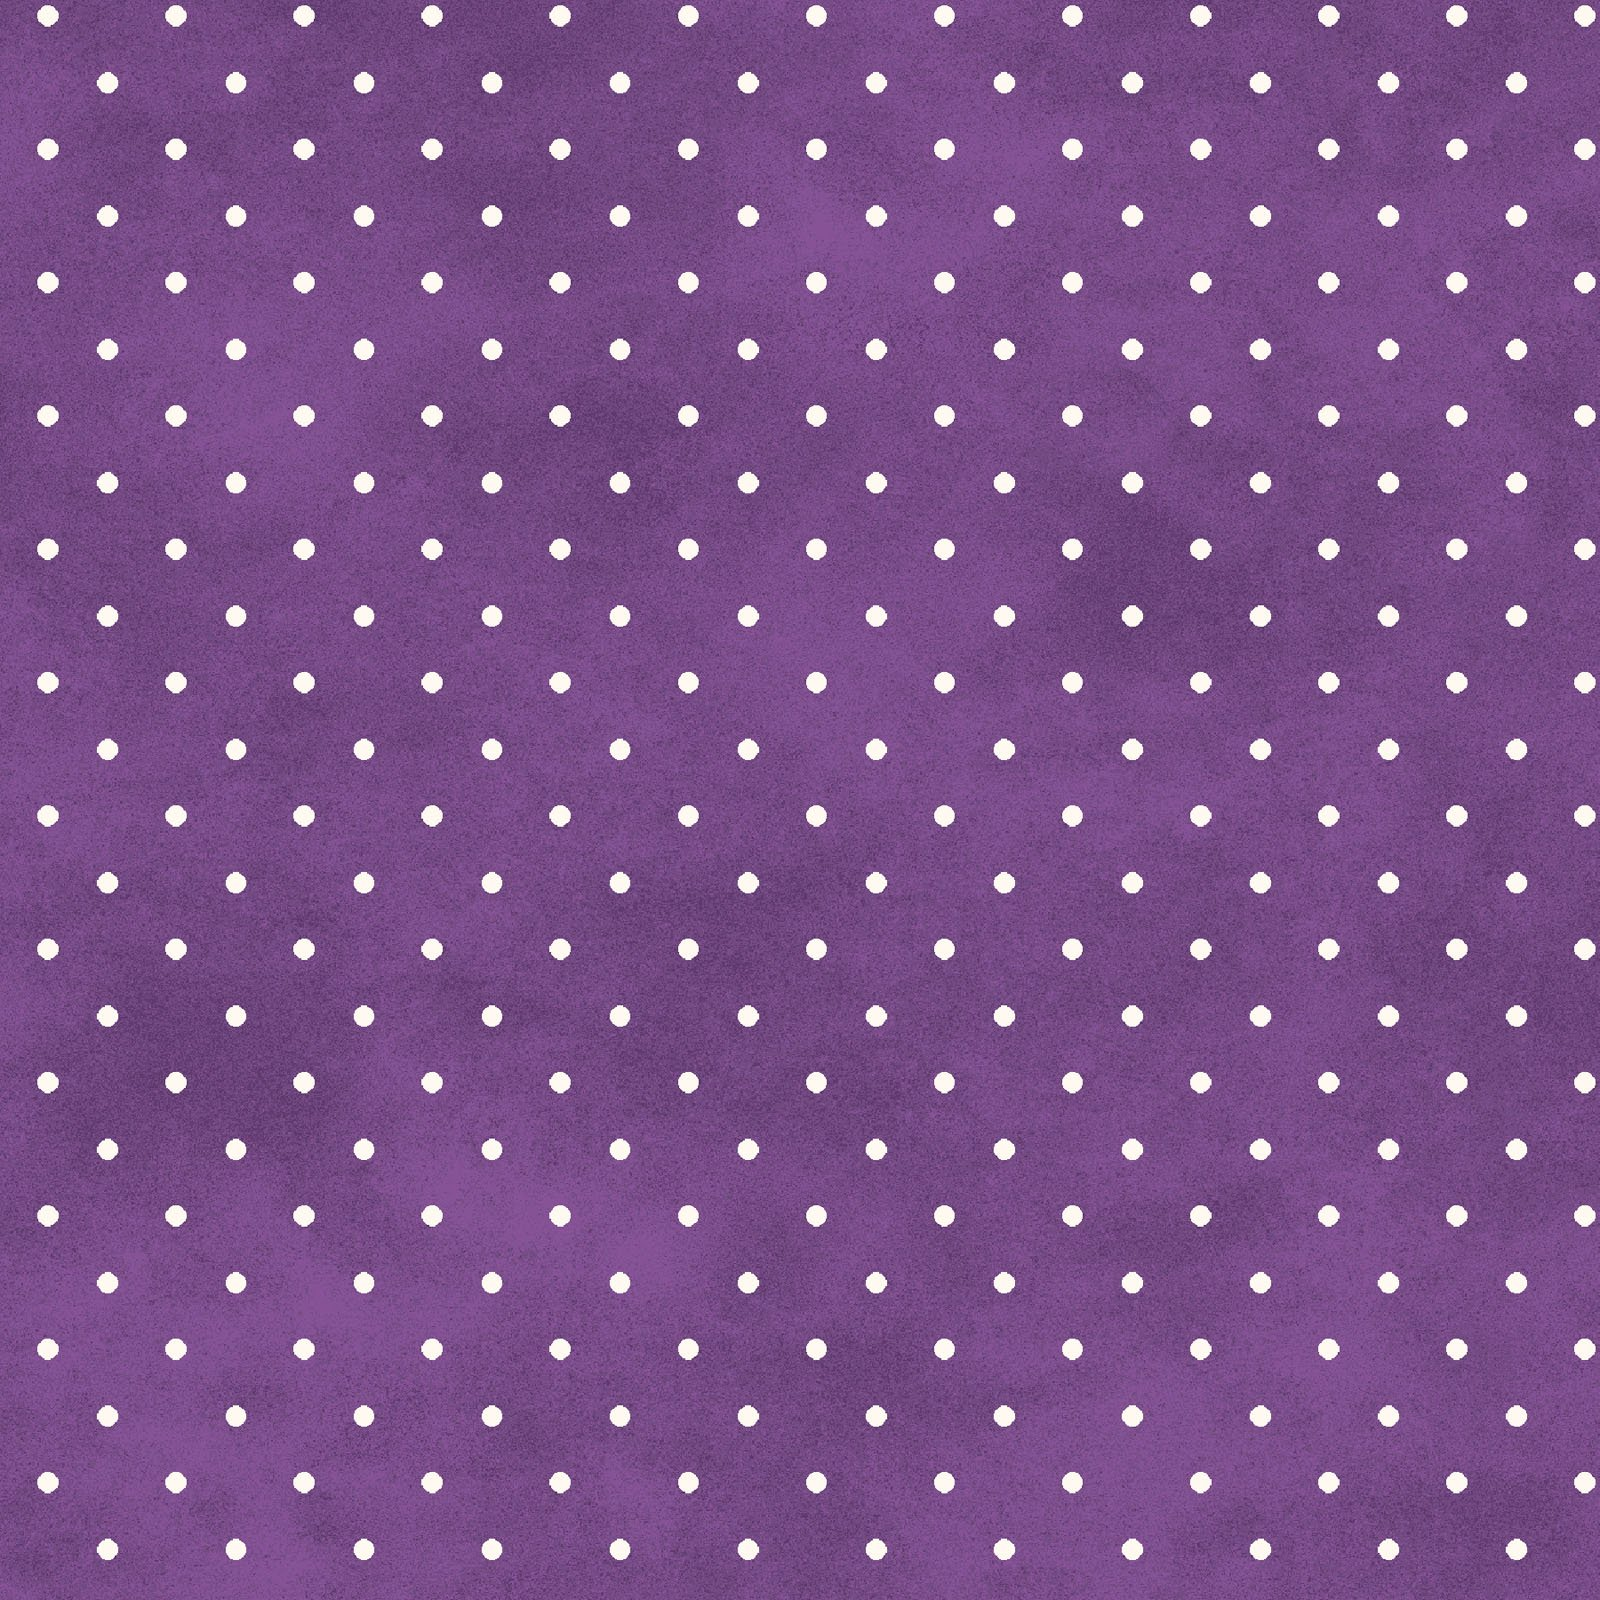 EESC-609 VR2 - BEAUTIFUL BASICS BY MAYWOOD STUDIO CLASSIC DOT MEADOW VIOLET